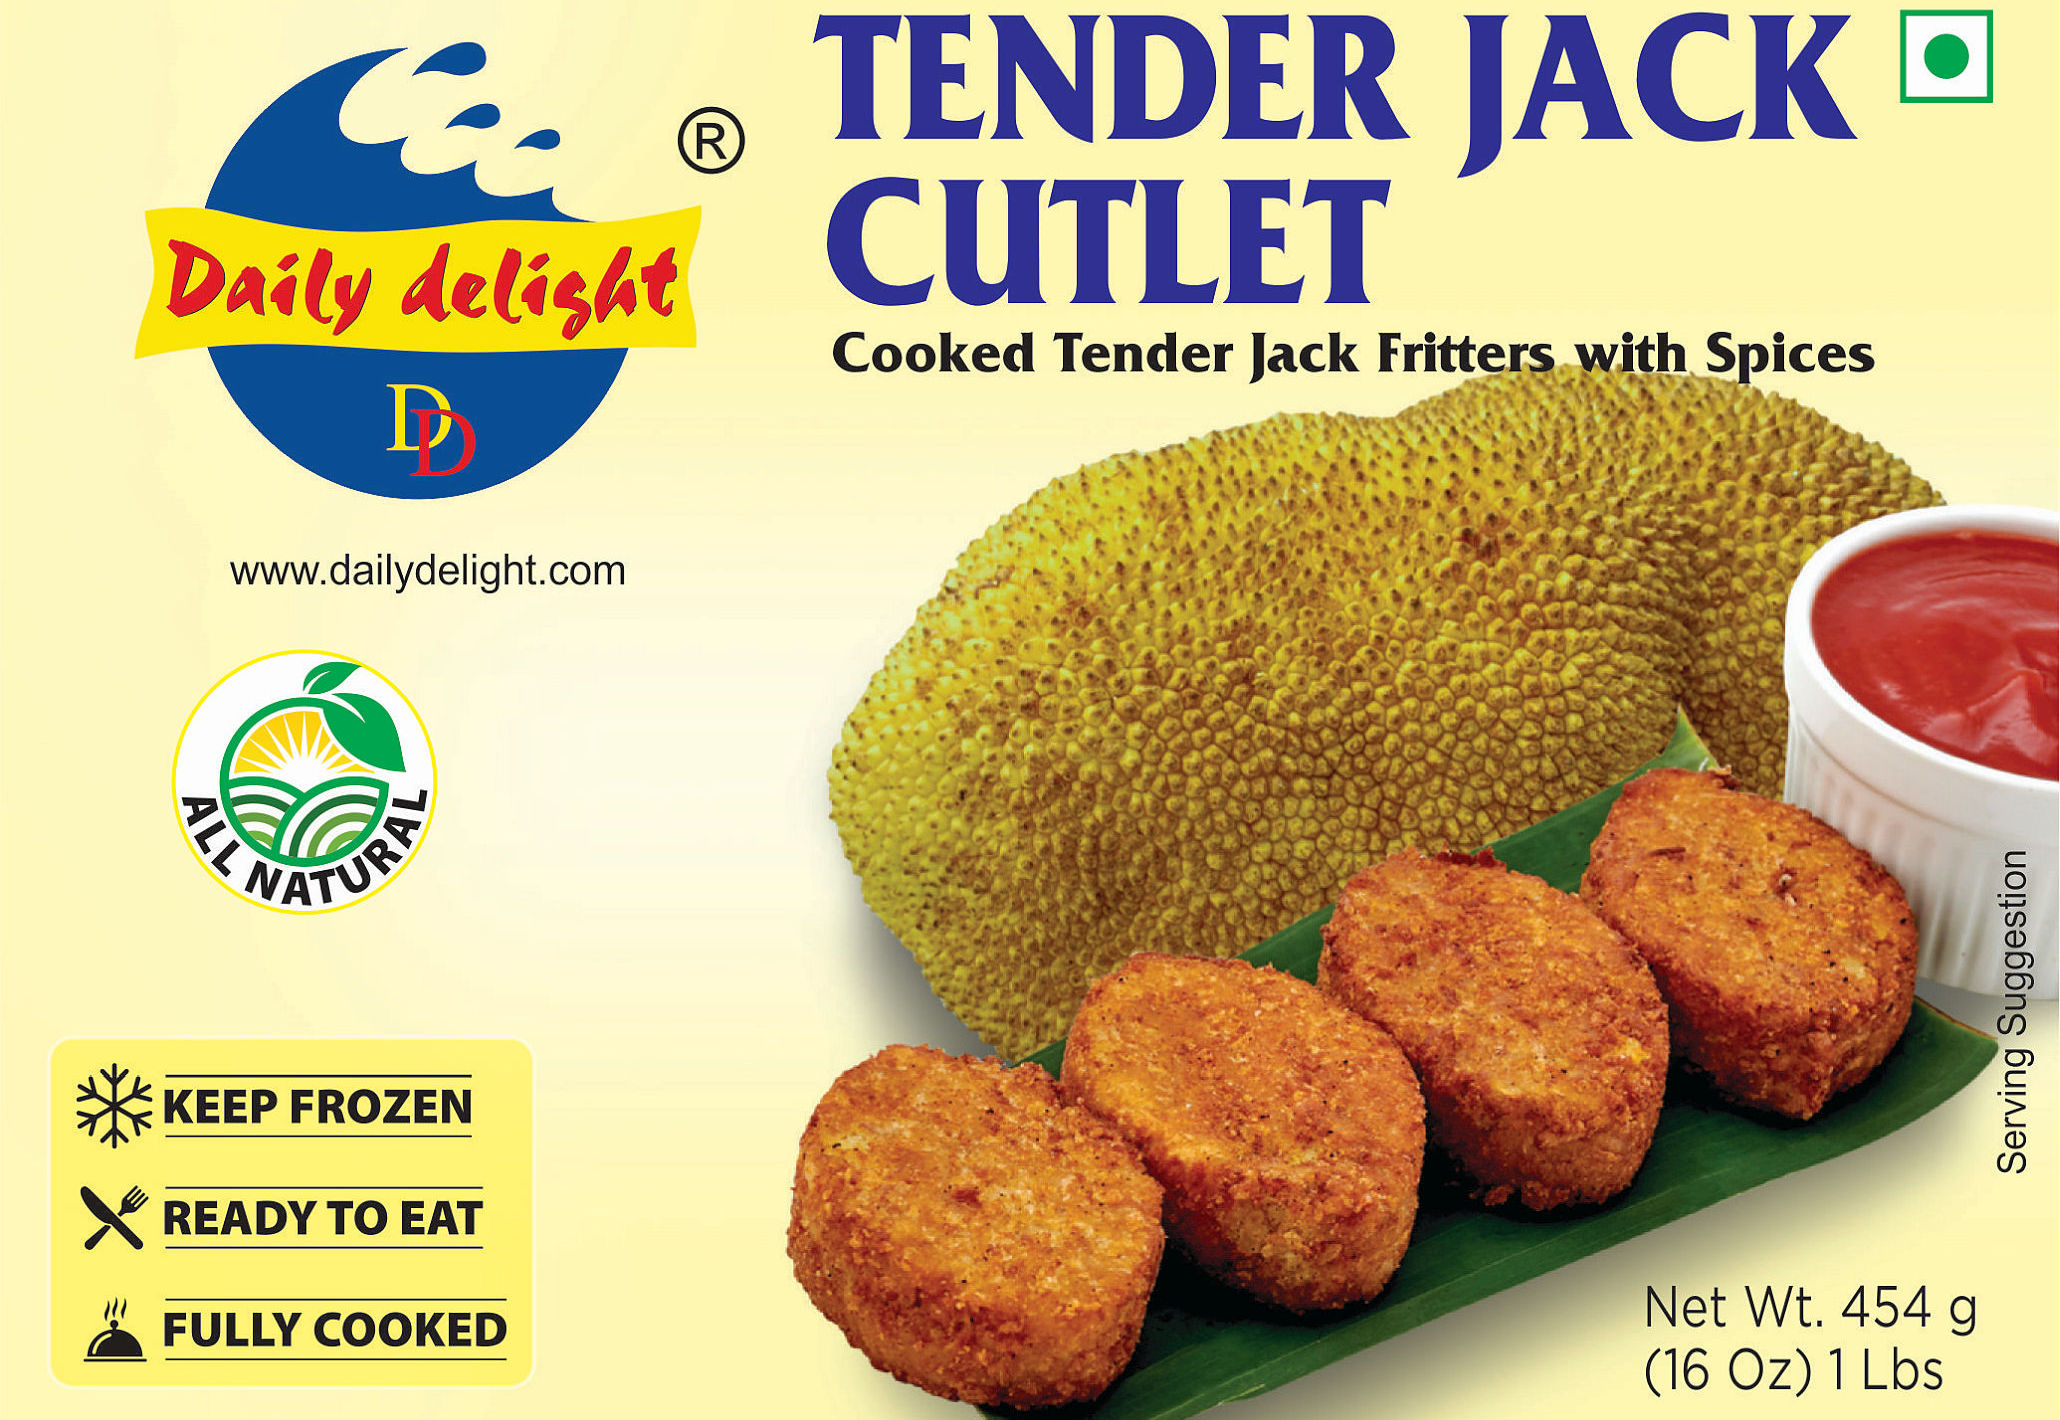 Daily Delight Tender Jack Cutlet